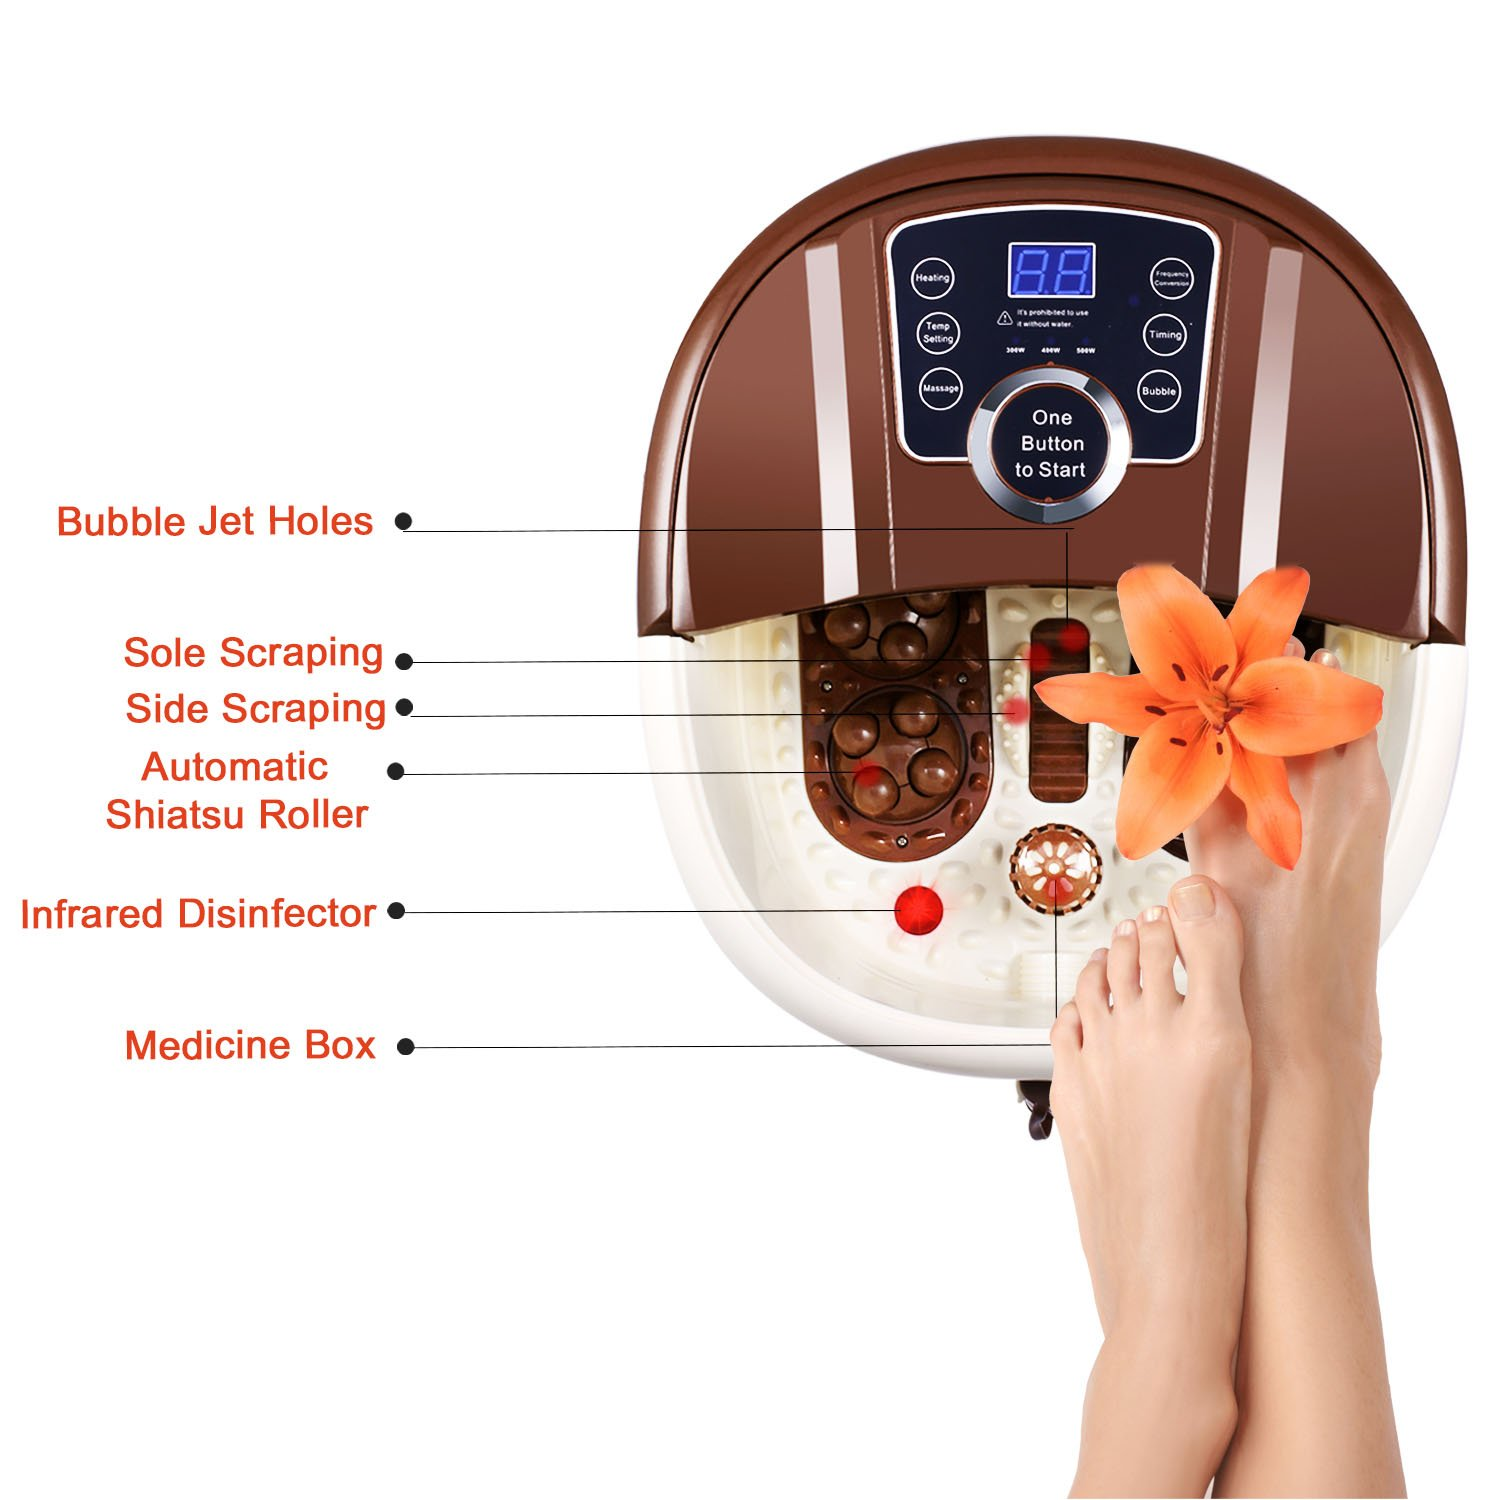 [ Best Gift !!! ] Guisee All in One Foot Spa Massager, Tai Chi Motorized Shiatsu Roller Massaging Acupuncture with O2 Bubbles,Digital Adjustable Temperature & Frequency Conversion on LED Display by Guisee (Image #3)